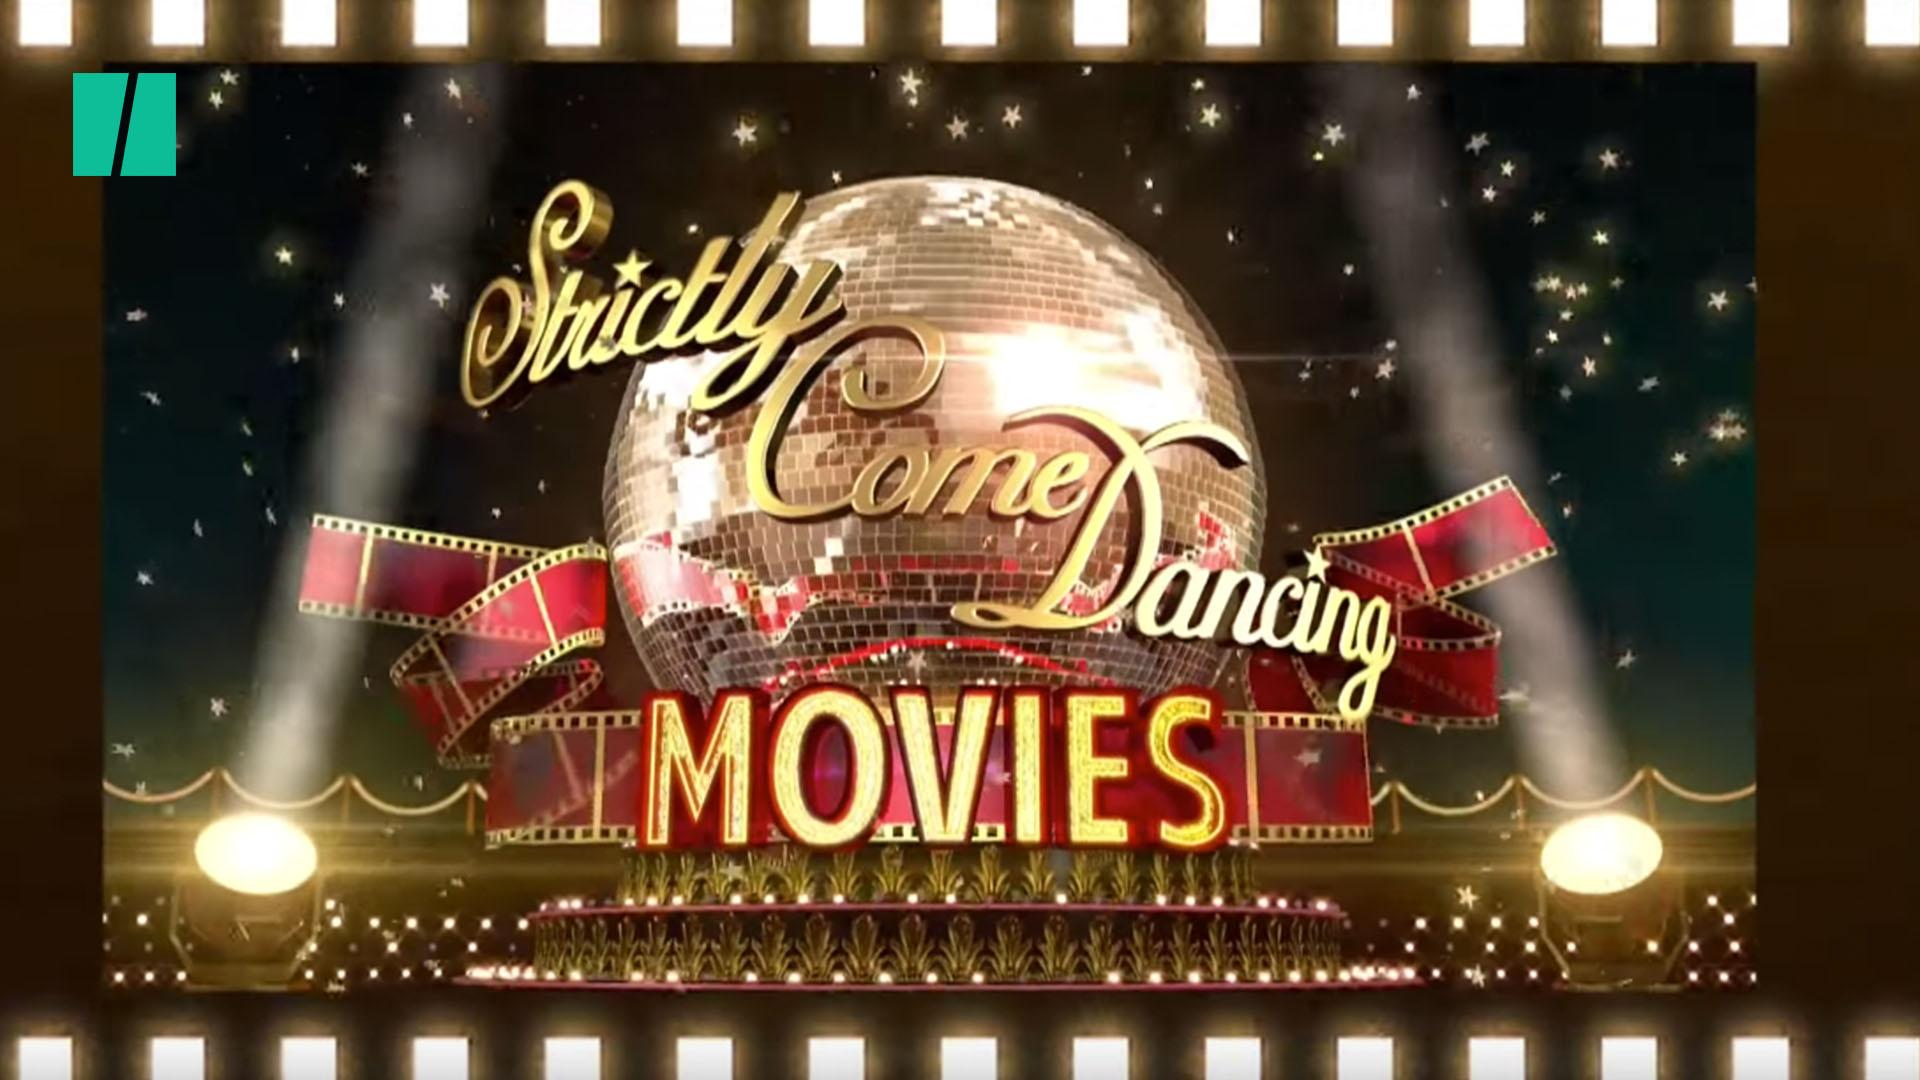 Looking Ahead To Movies Week On Strictly Come Dancing